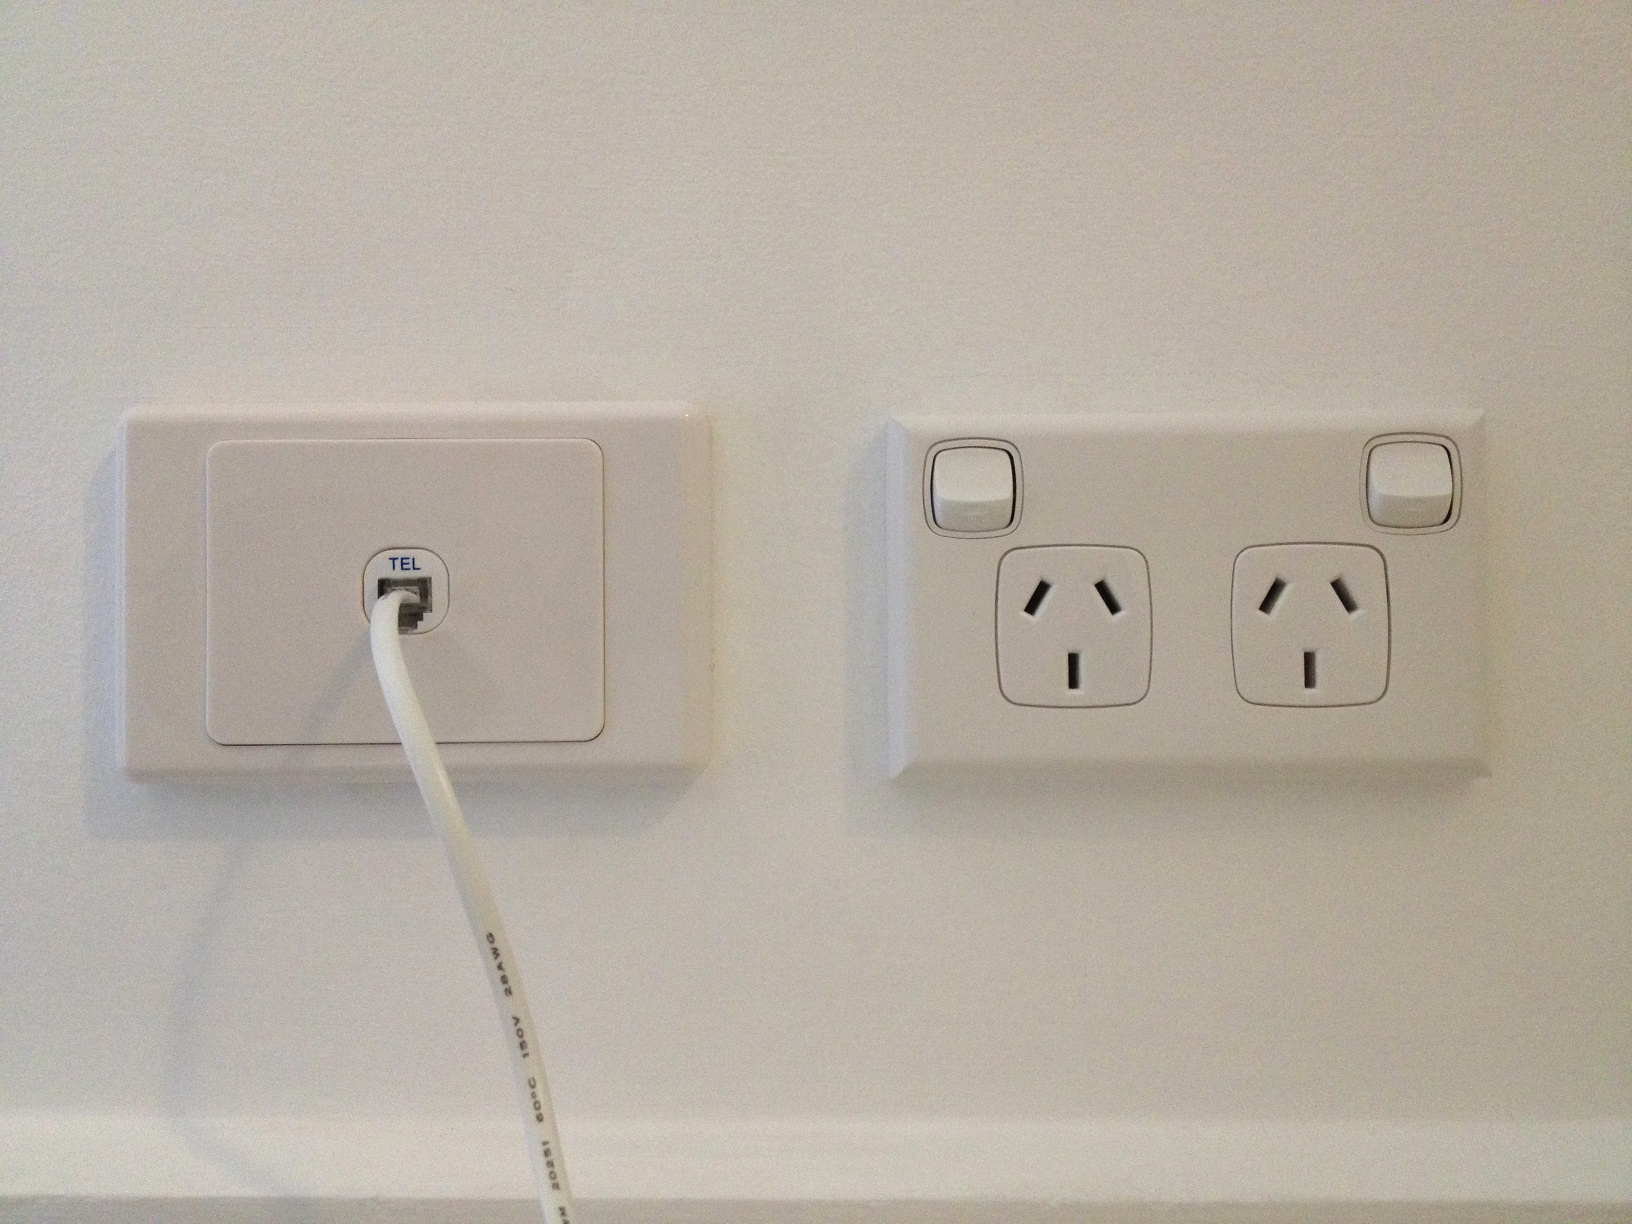 phone socket upgraded1?w=640&h=480 upgrading a 600 series phone socket to rj11 tp69 telstra wall plate wiring diagram at panicattacktreatment.co